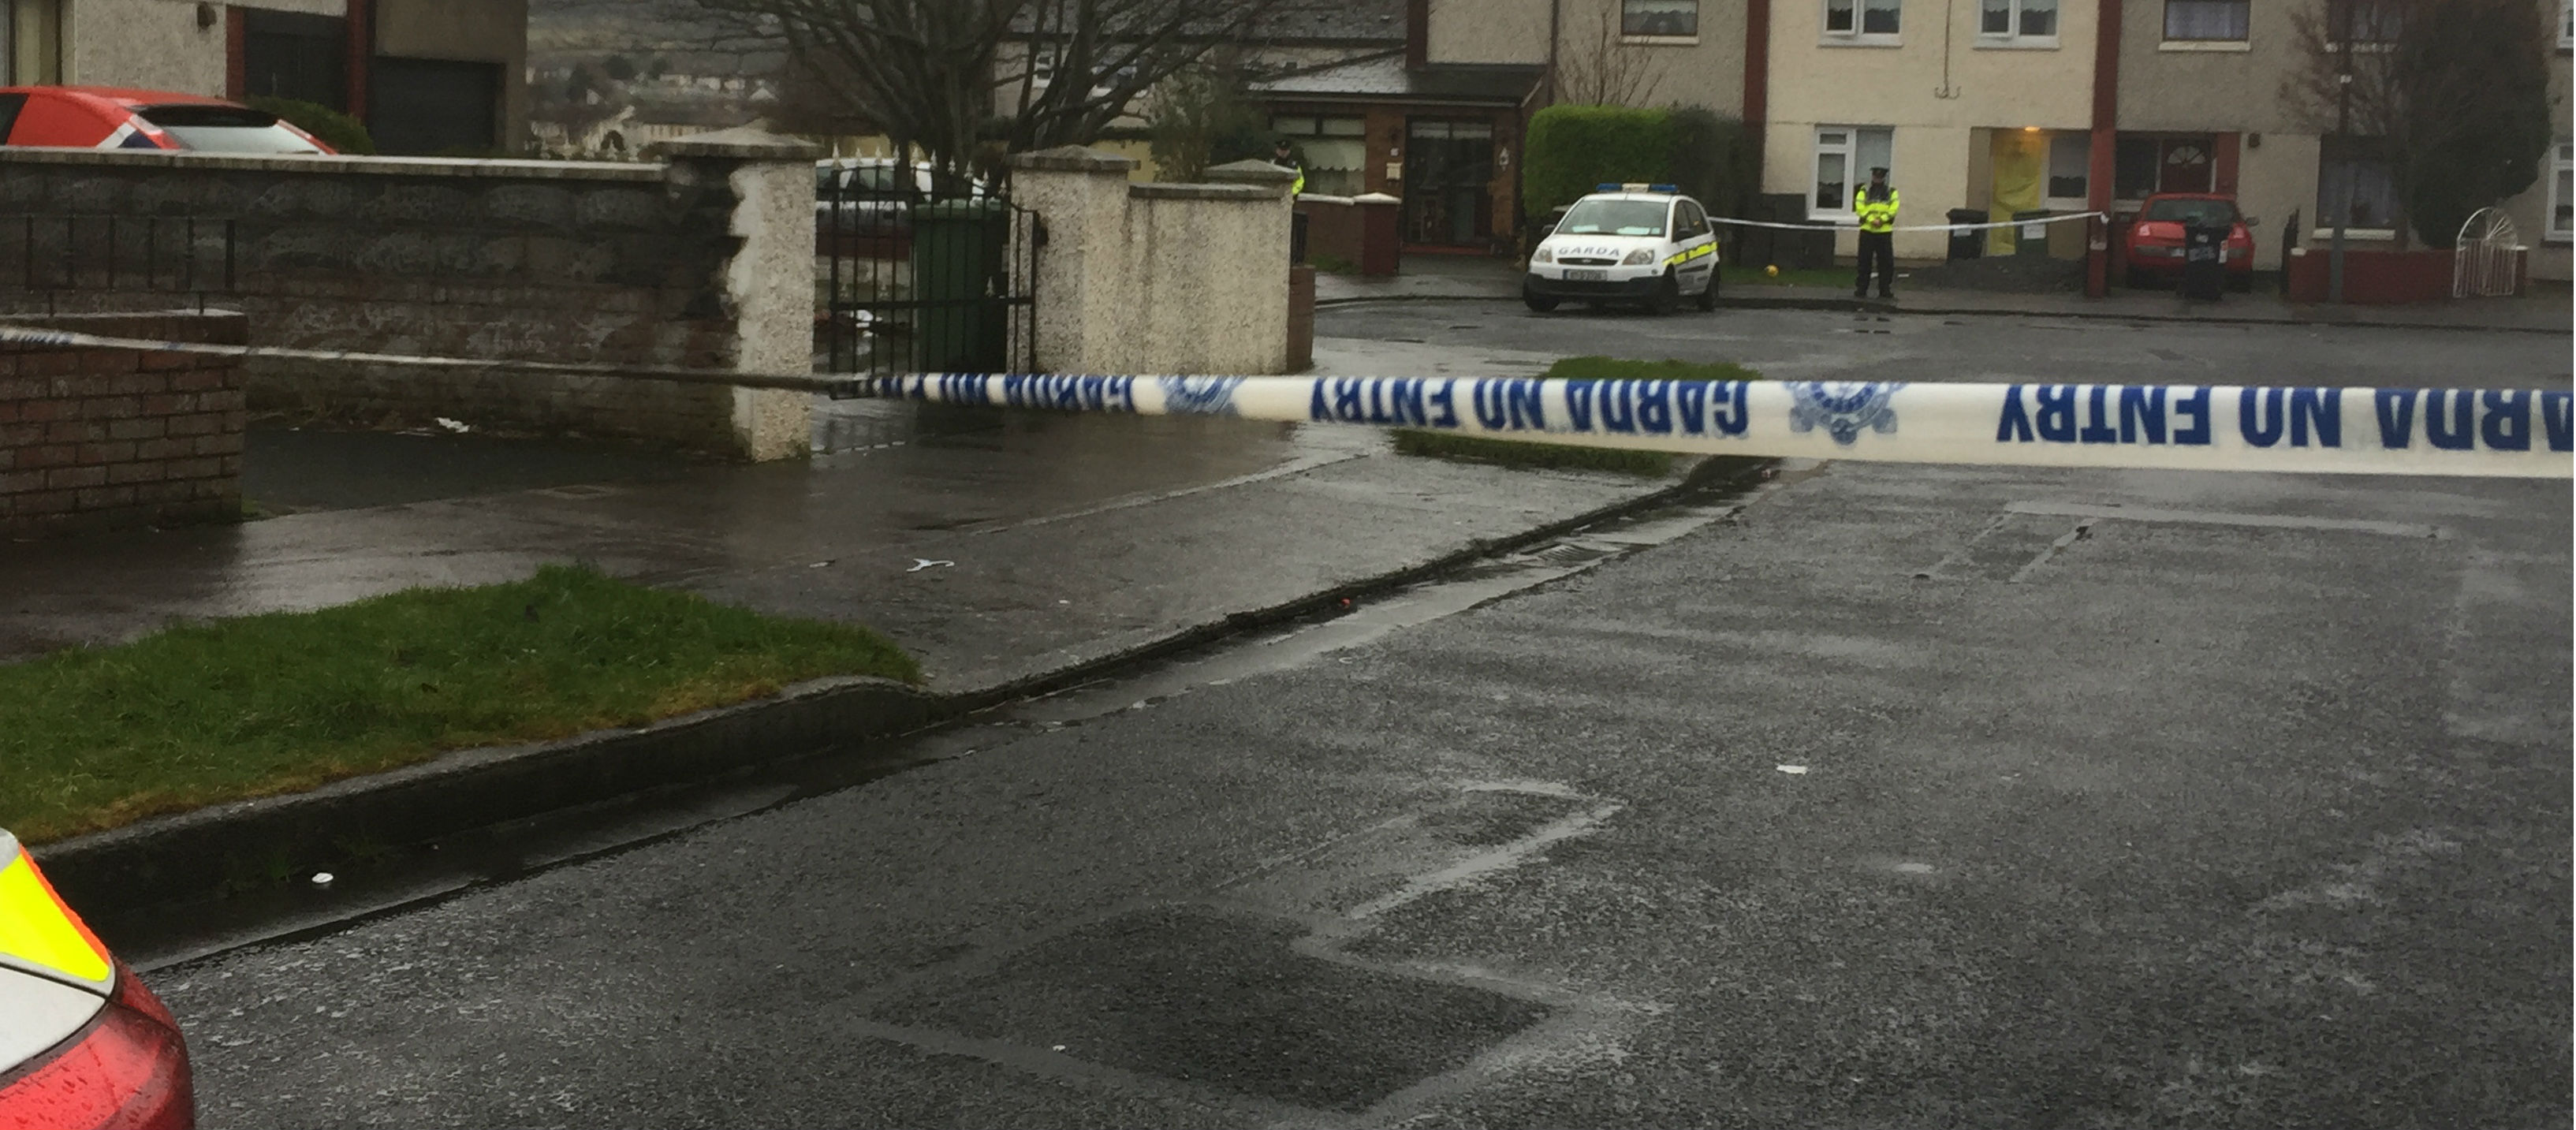 A Teen's Arrested After Jobstown Attack